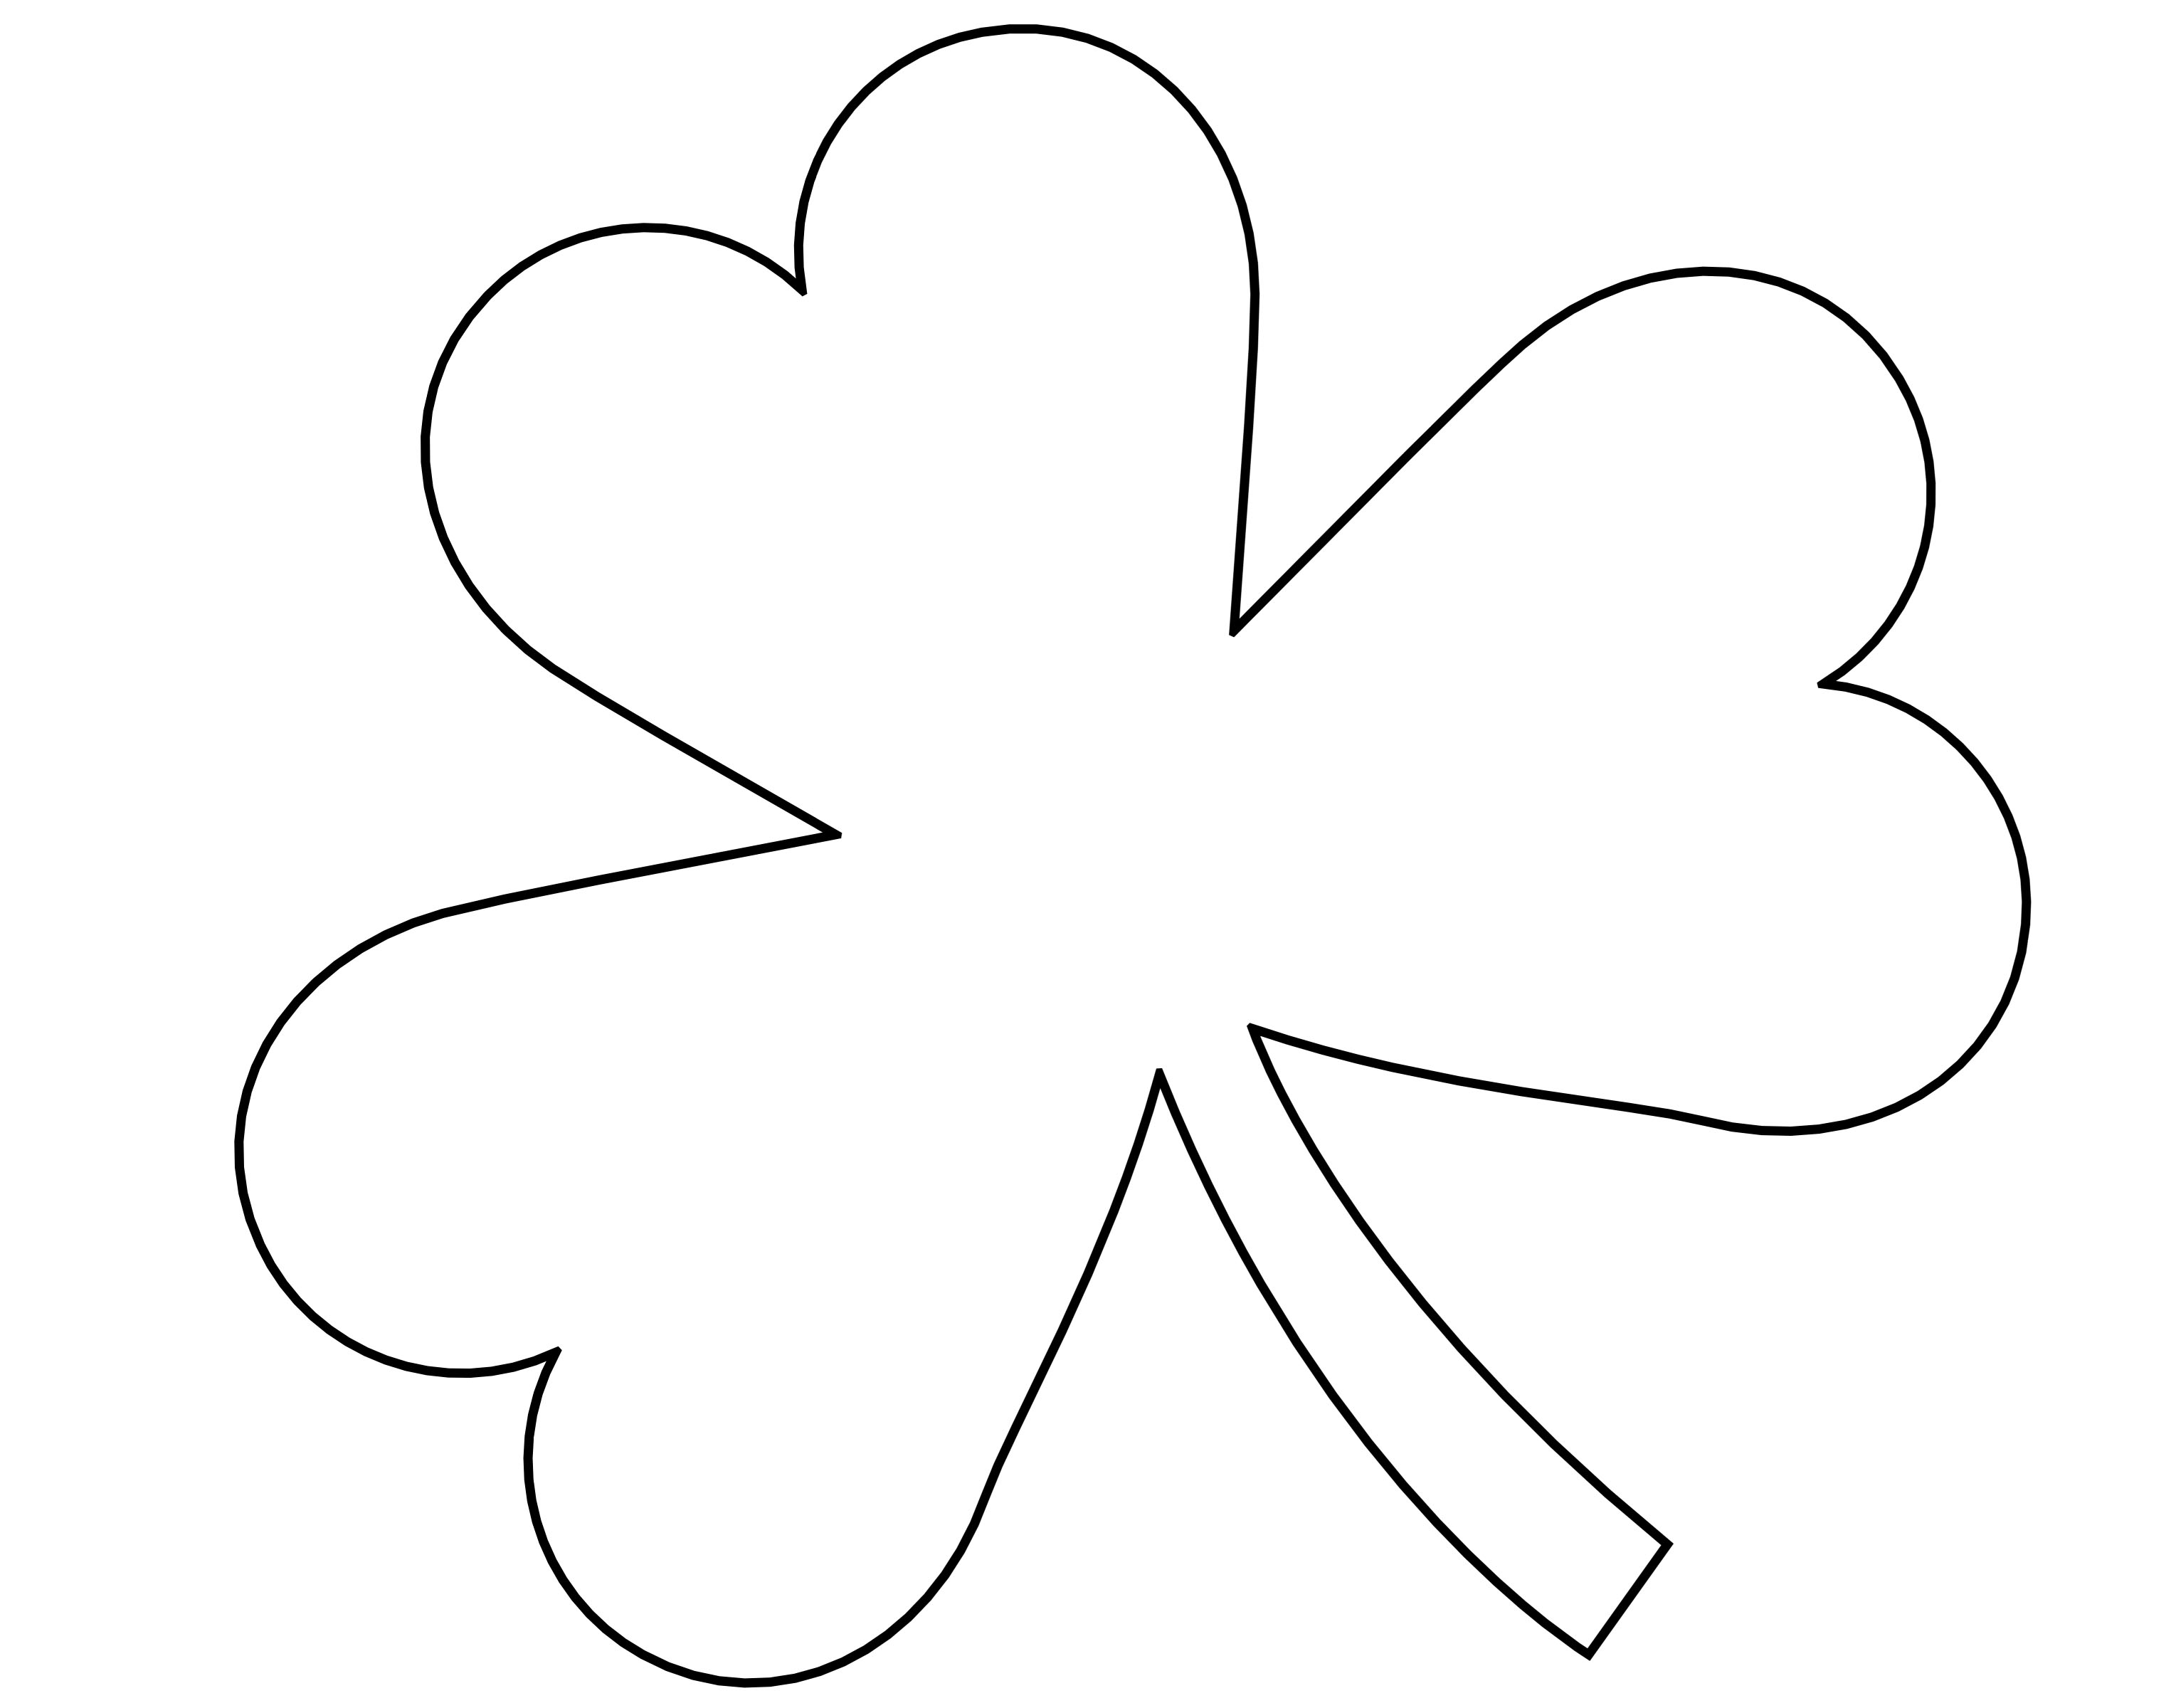 Remarkable image for free printable shamrock template